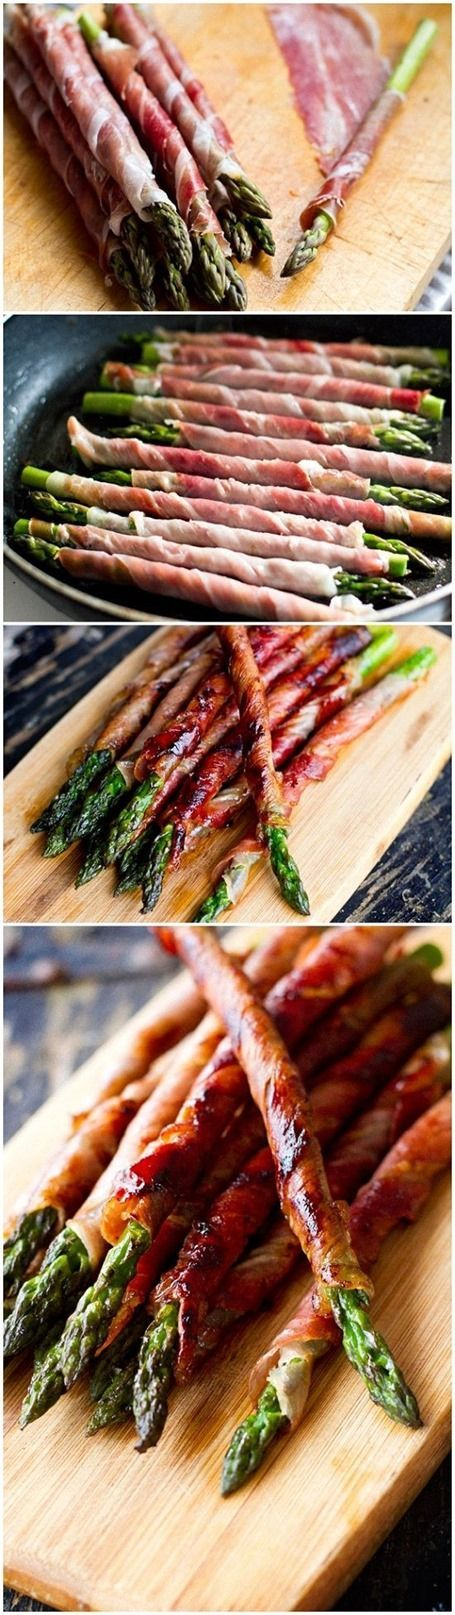 1000+ images about Recipes on Pinterest | Wild mushrooms, How to cook ...